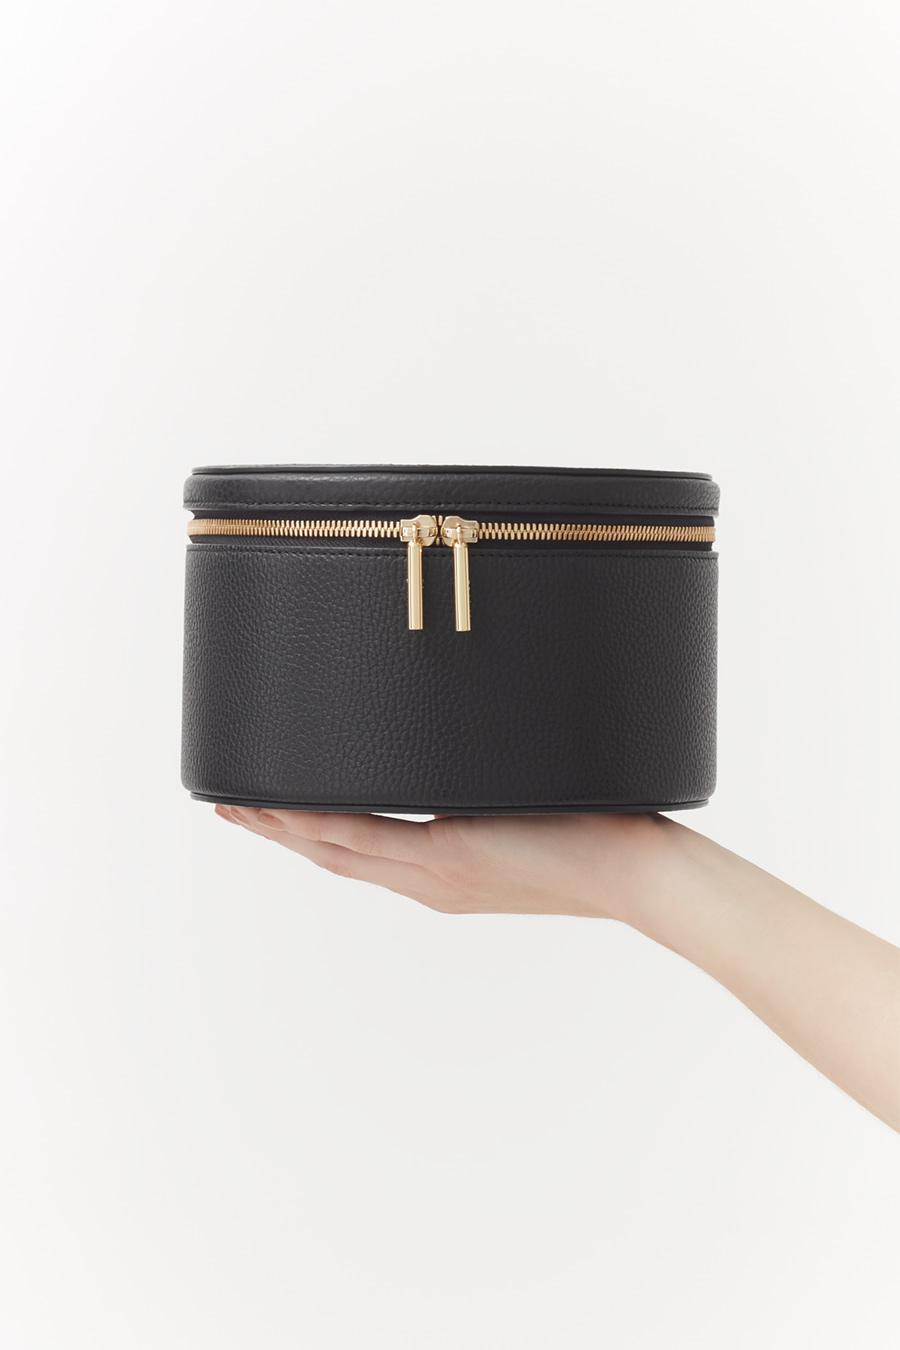 Women's Leather Wellness Case in Black   Pebbled Leather by Cuyana 3